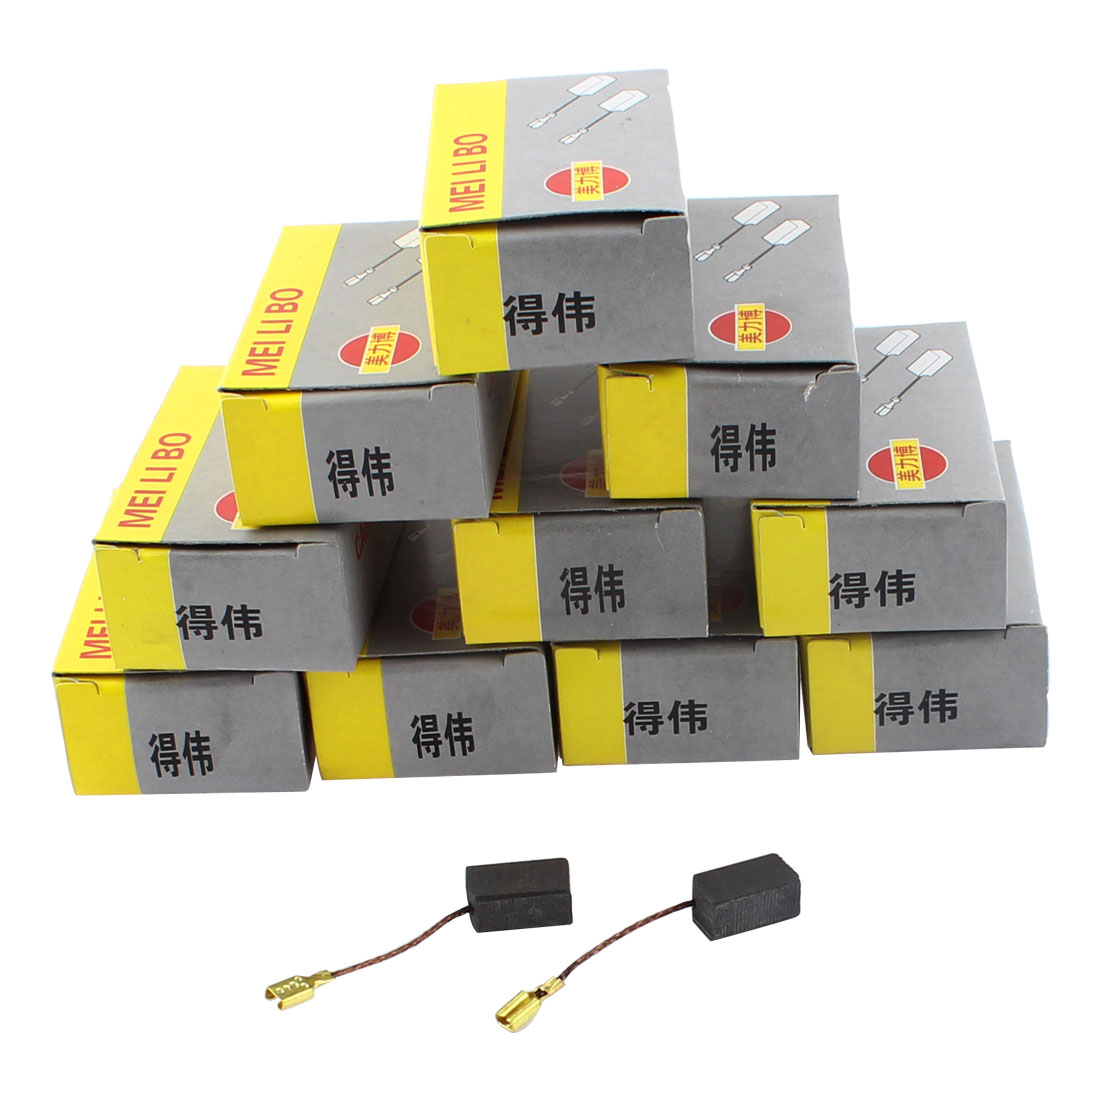 14mm x 8mm x 6mm Replacement Electric Motor Power Tool Carbon Brushes 10 Pairs